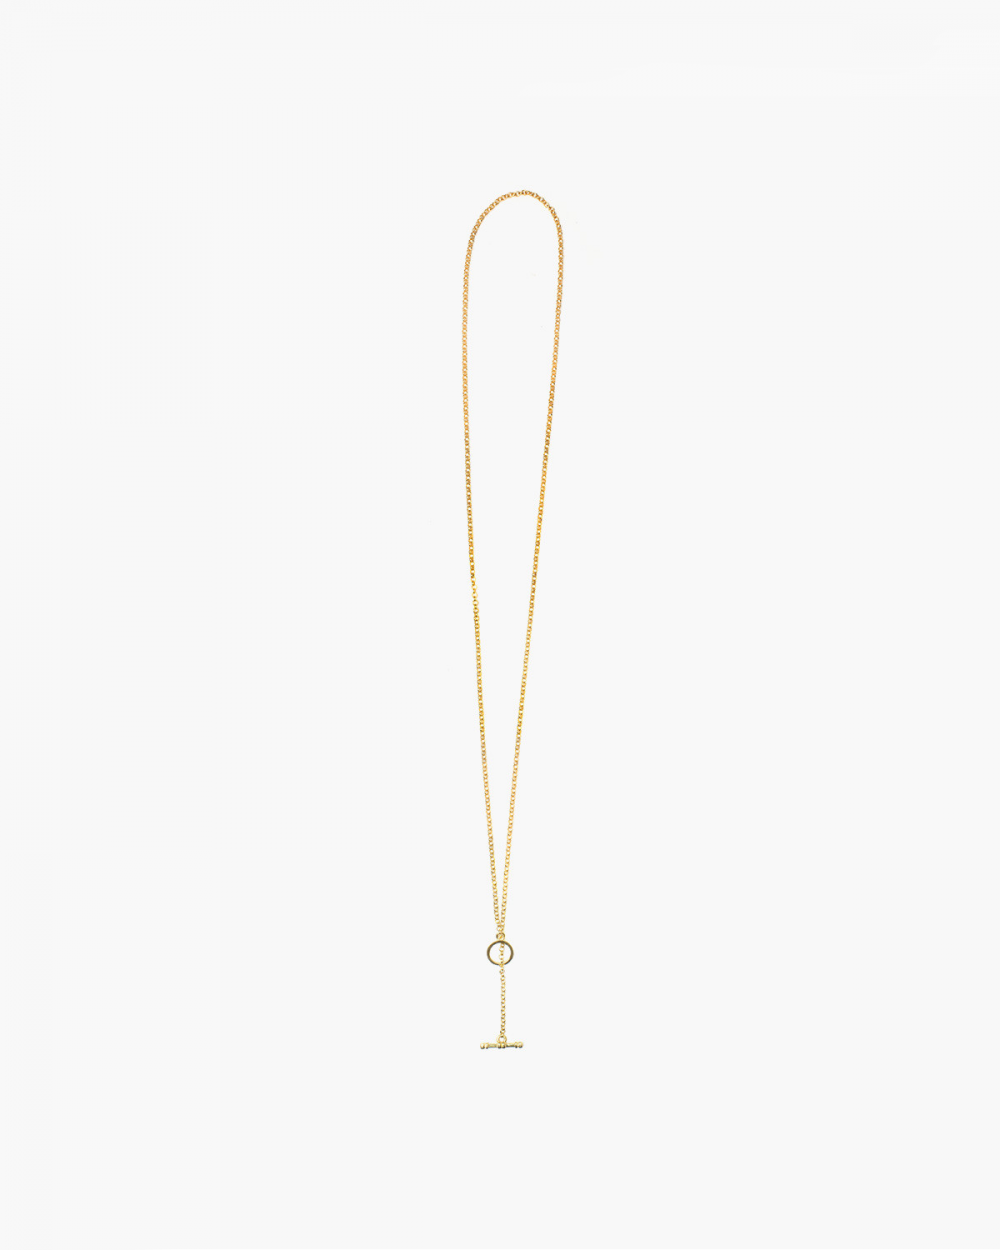 Necklaces YELLOW GOLD ROLO 300 WITH T-BAR NECKLACE - 60 NOVE25